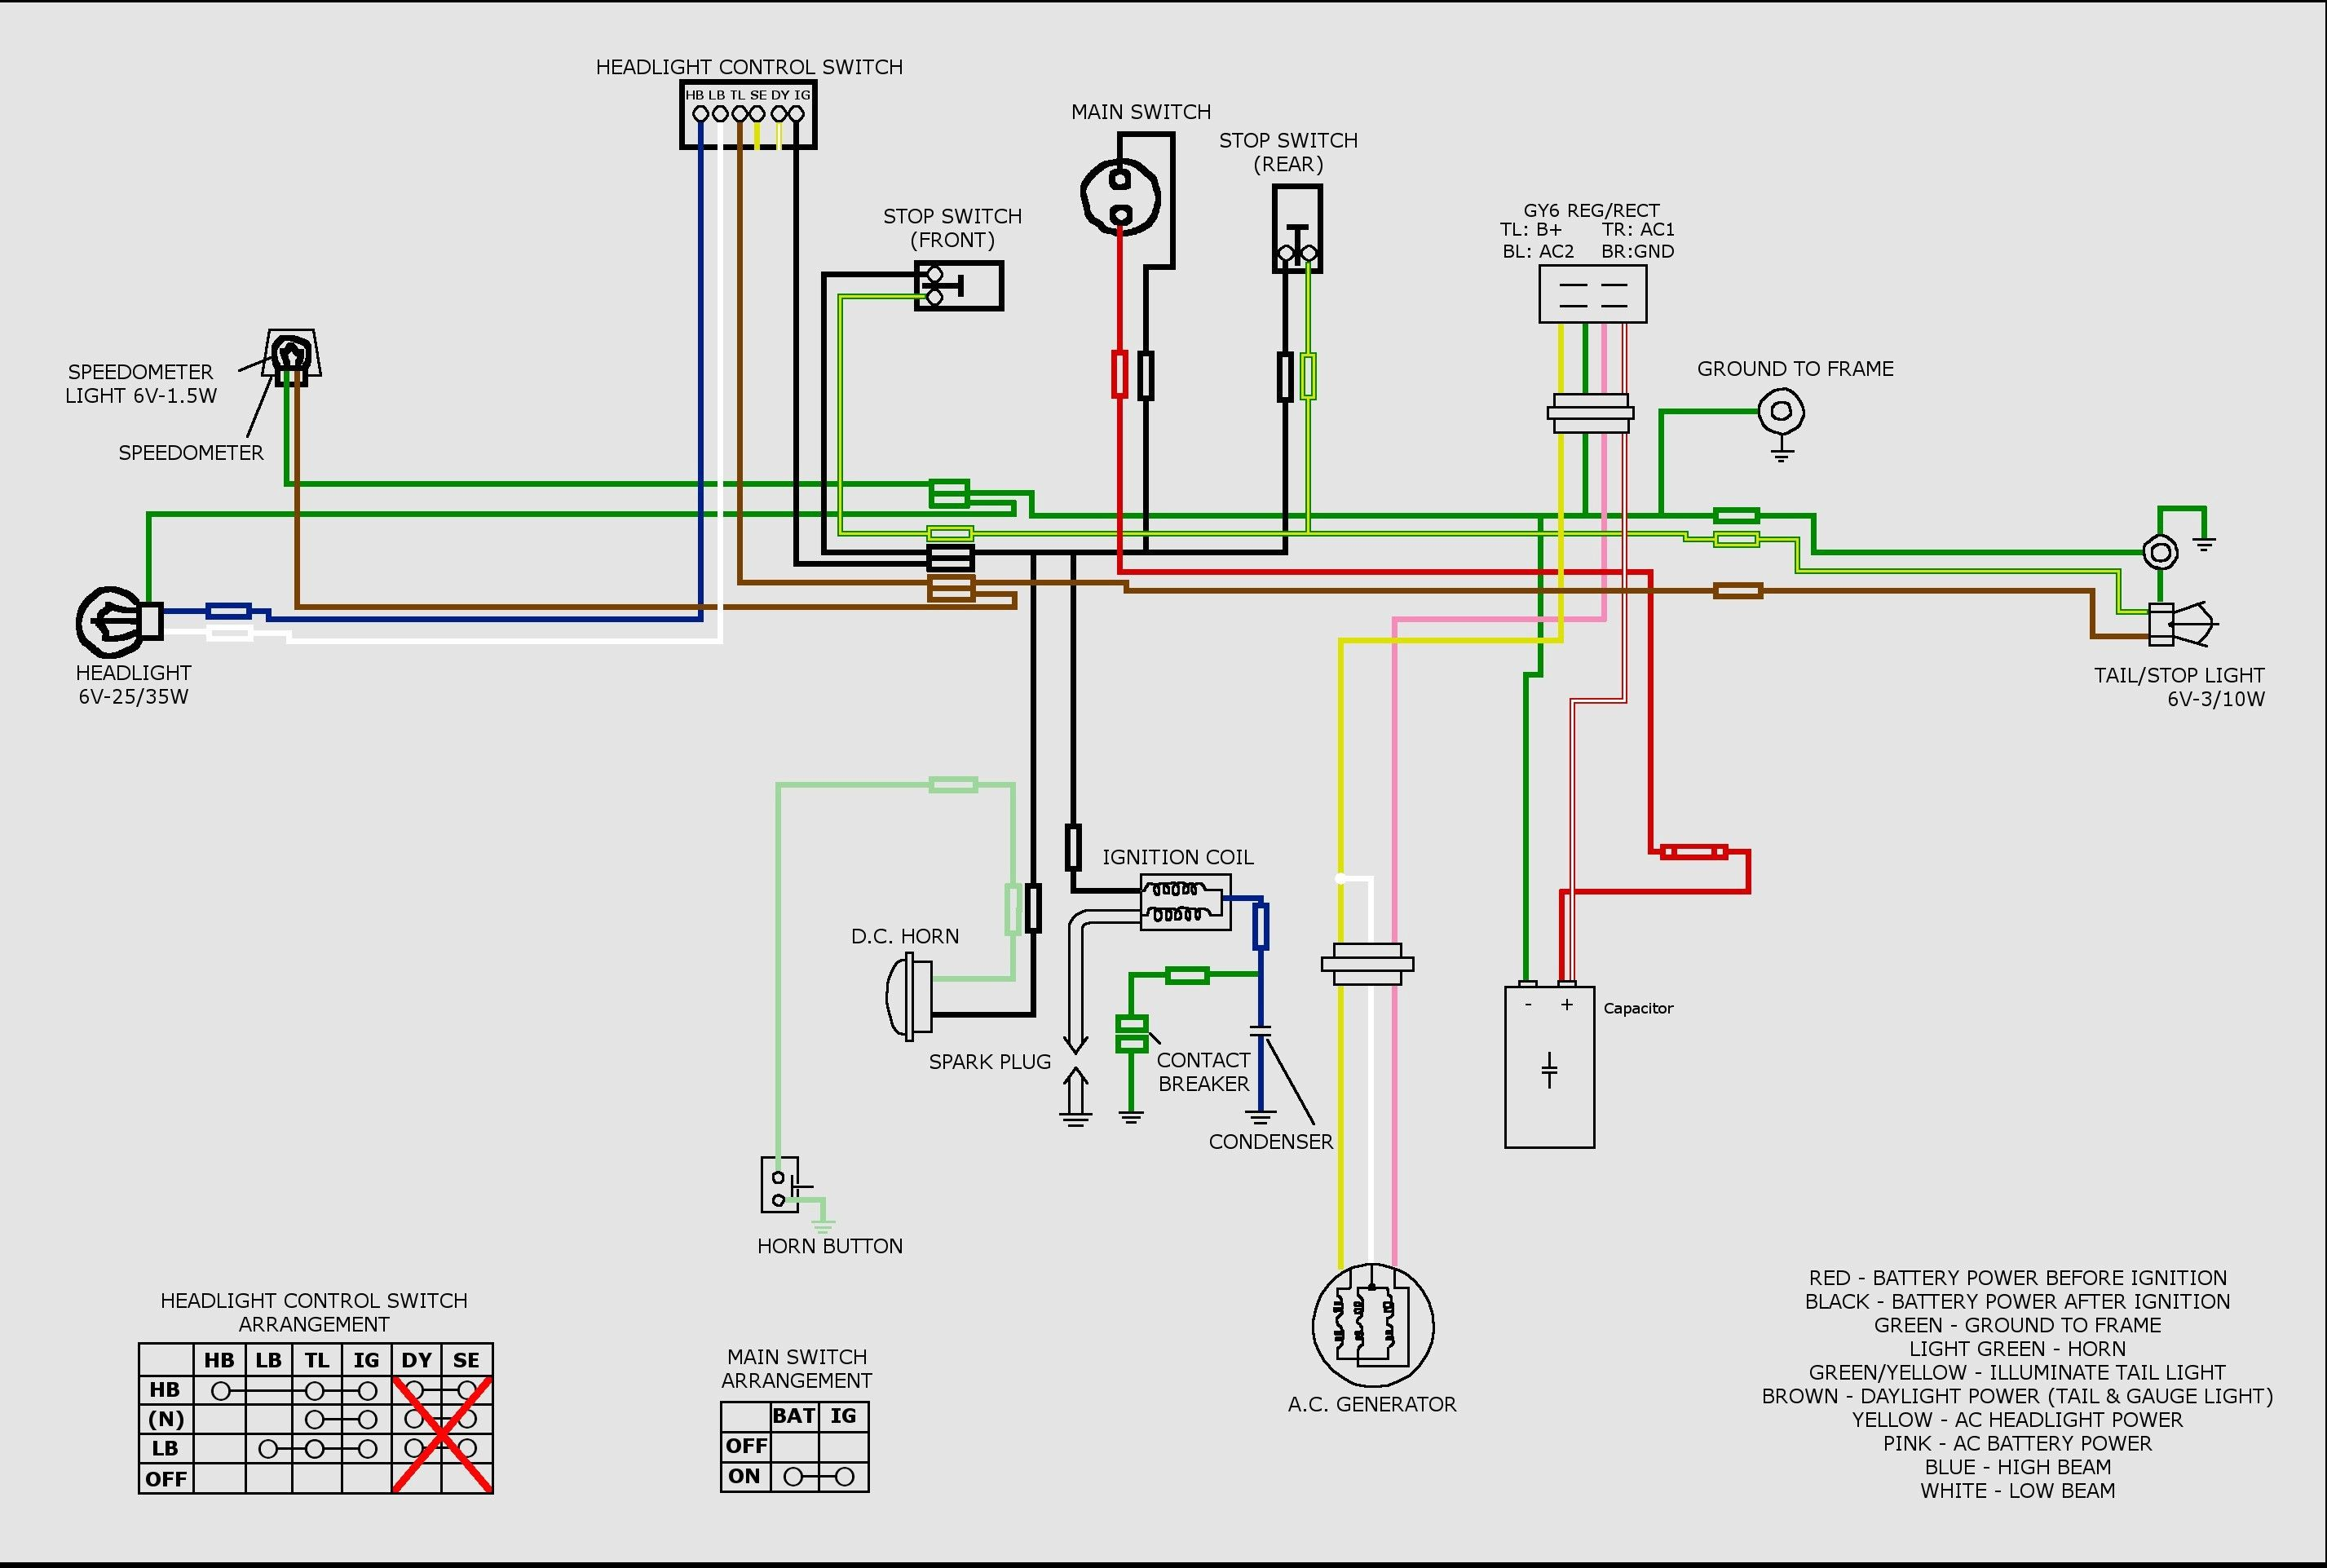 Incredible Gy6 Lighting Diagram Wiring Diagram Data Wiring Cloud Mangdienstapotheekhoekschewaardnl